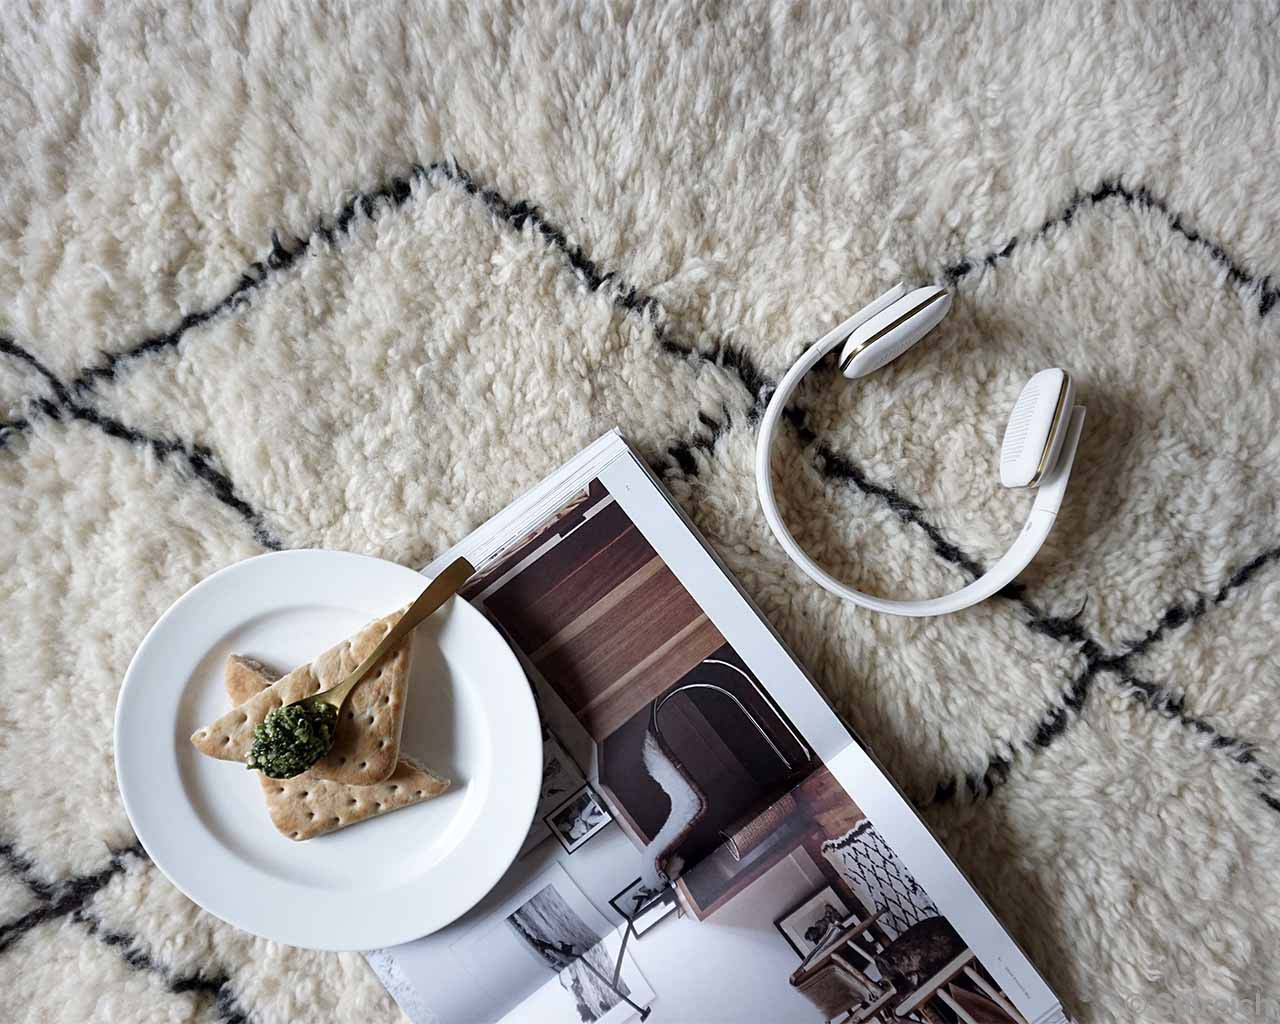 handmade headphone biscuits and magazine asian rugs